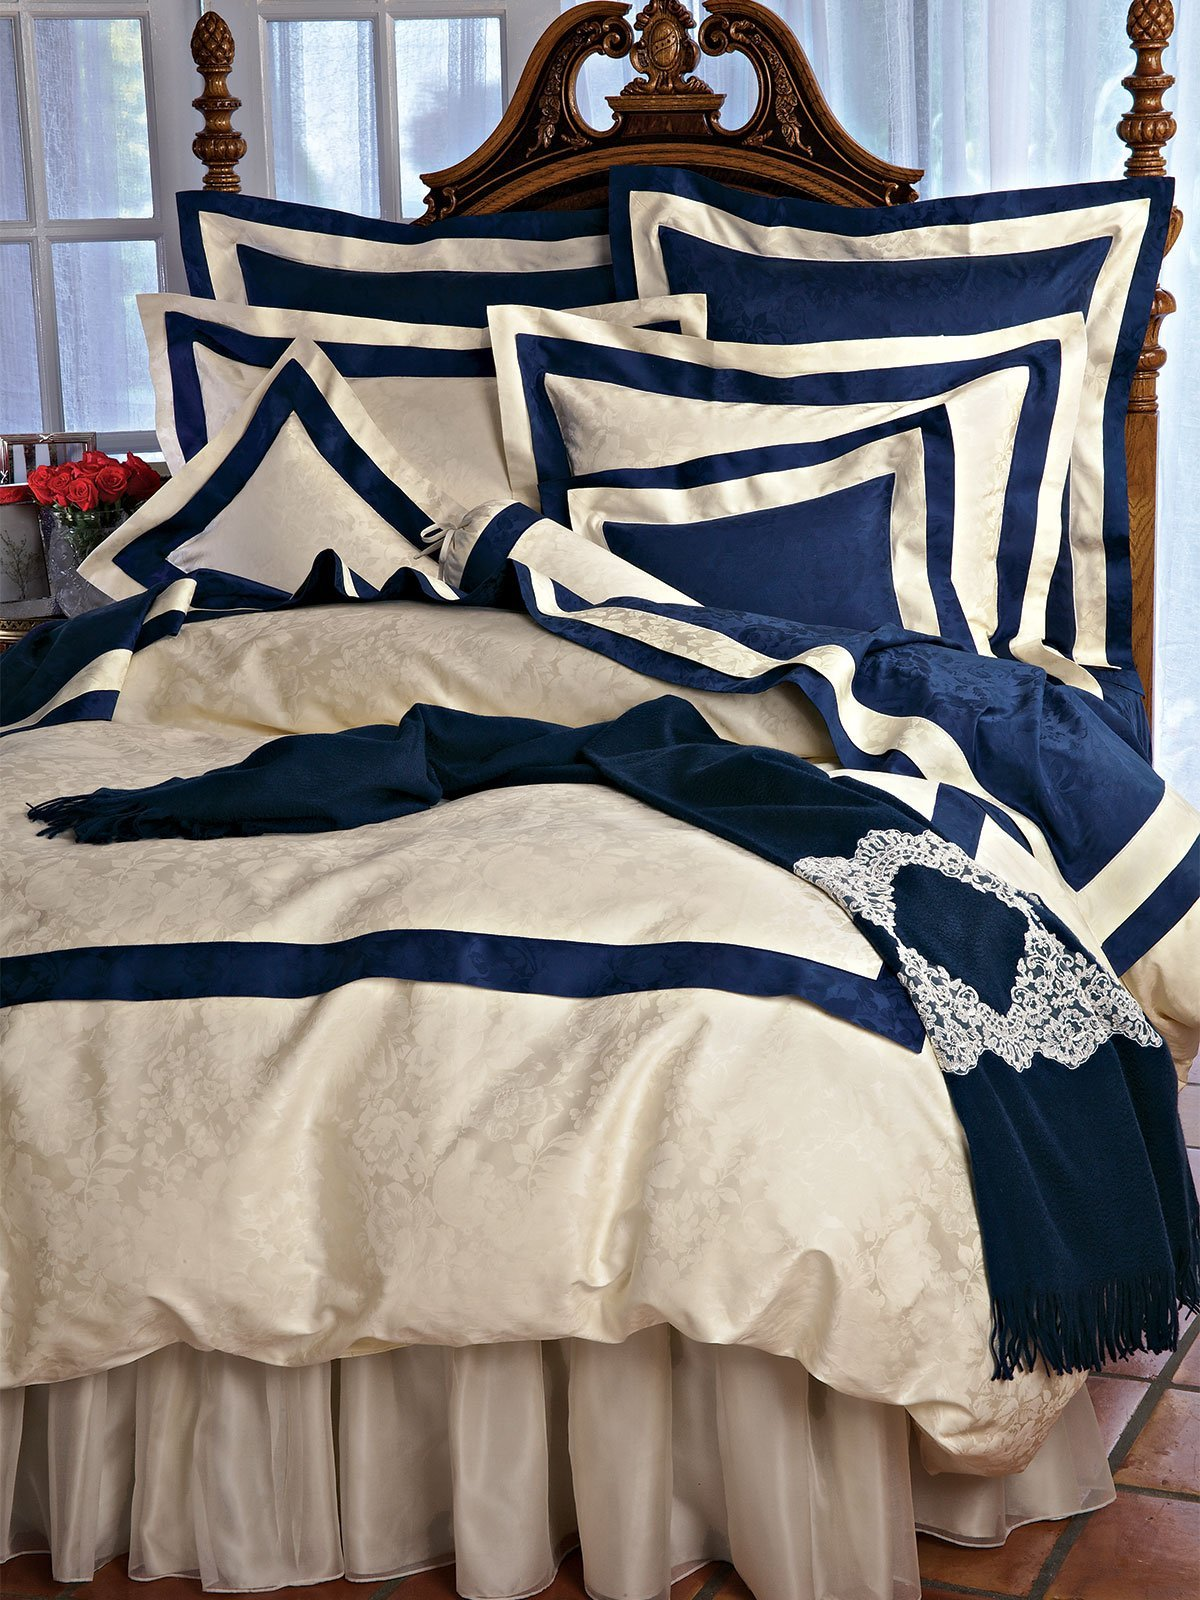 Majesty Duvet Covers (Comforter Covers), Navy/Ivory (King, each)